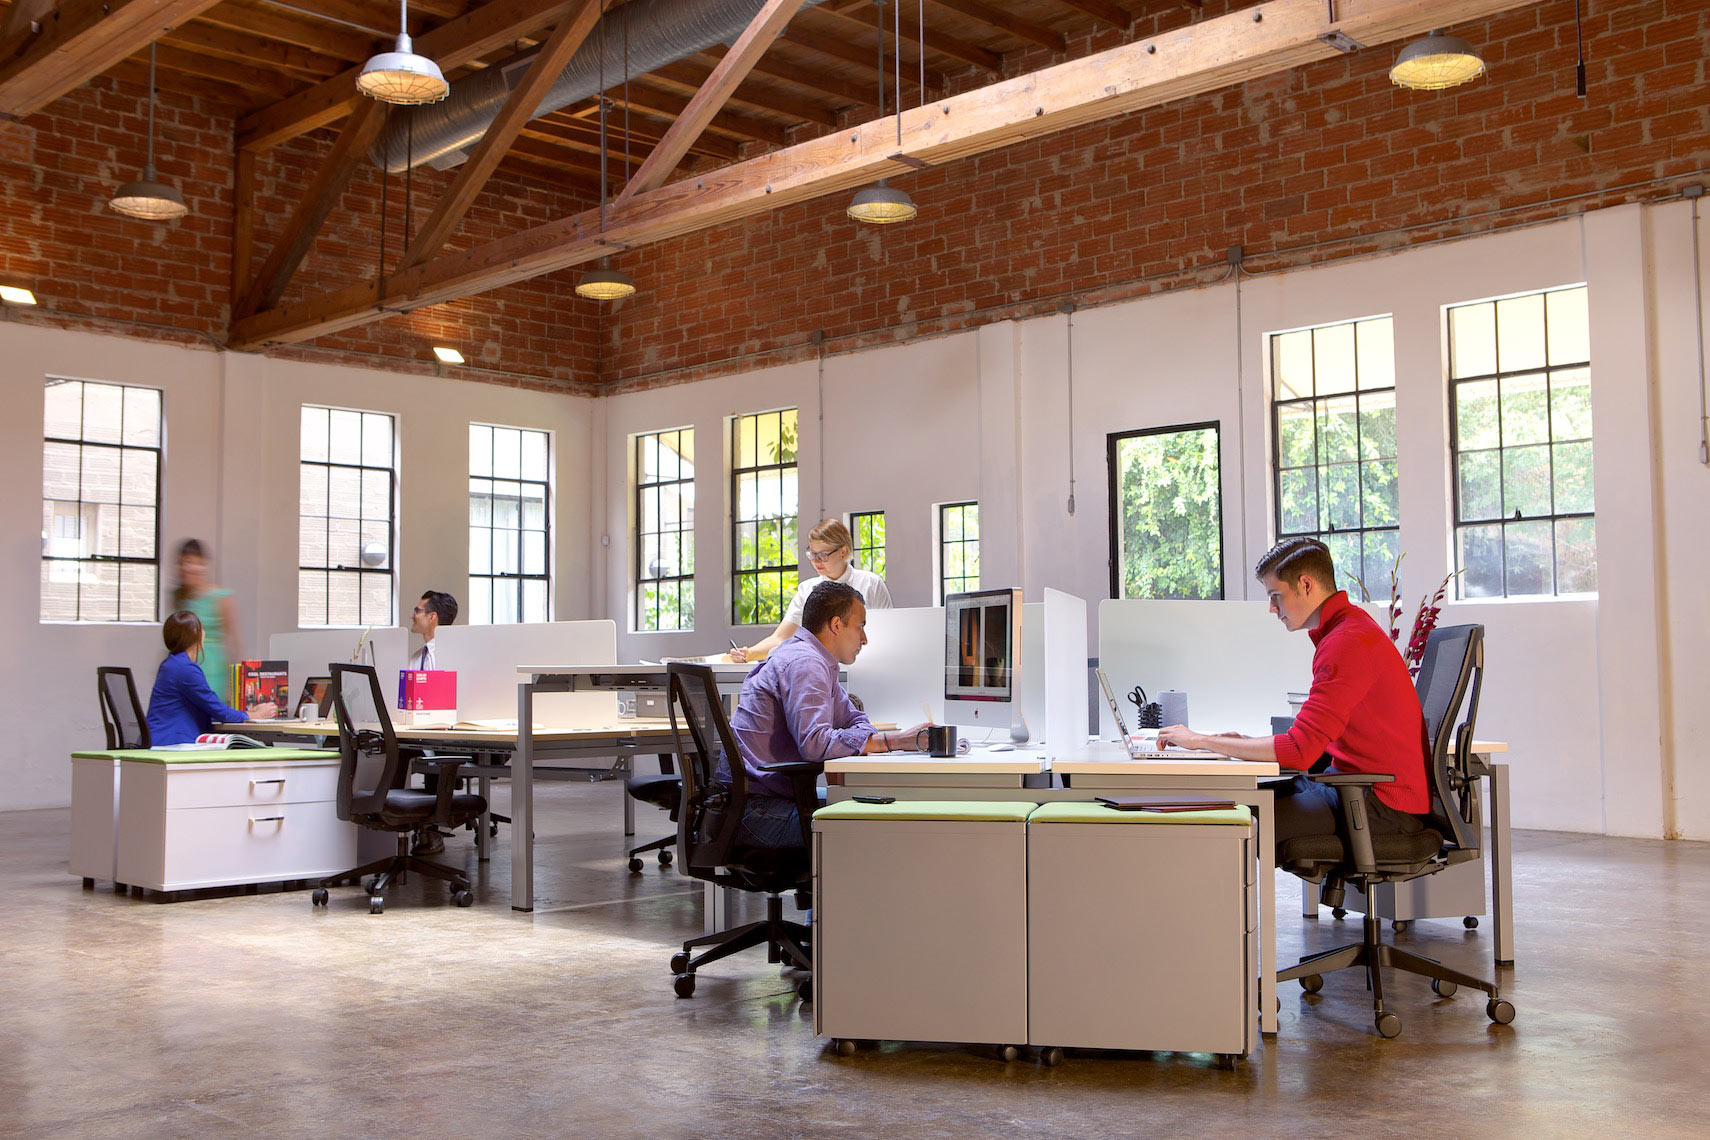 clear-design-desking-jason-risner-photography-1549